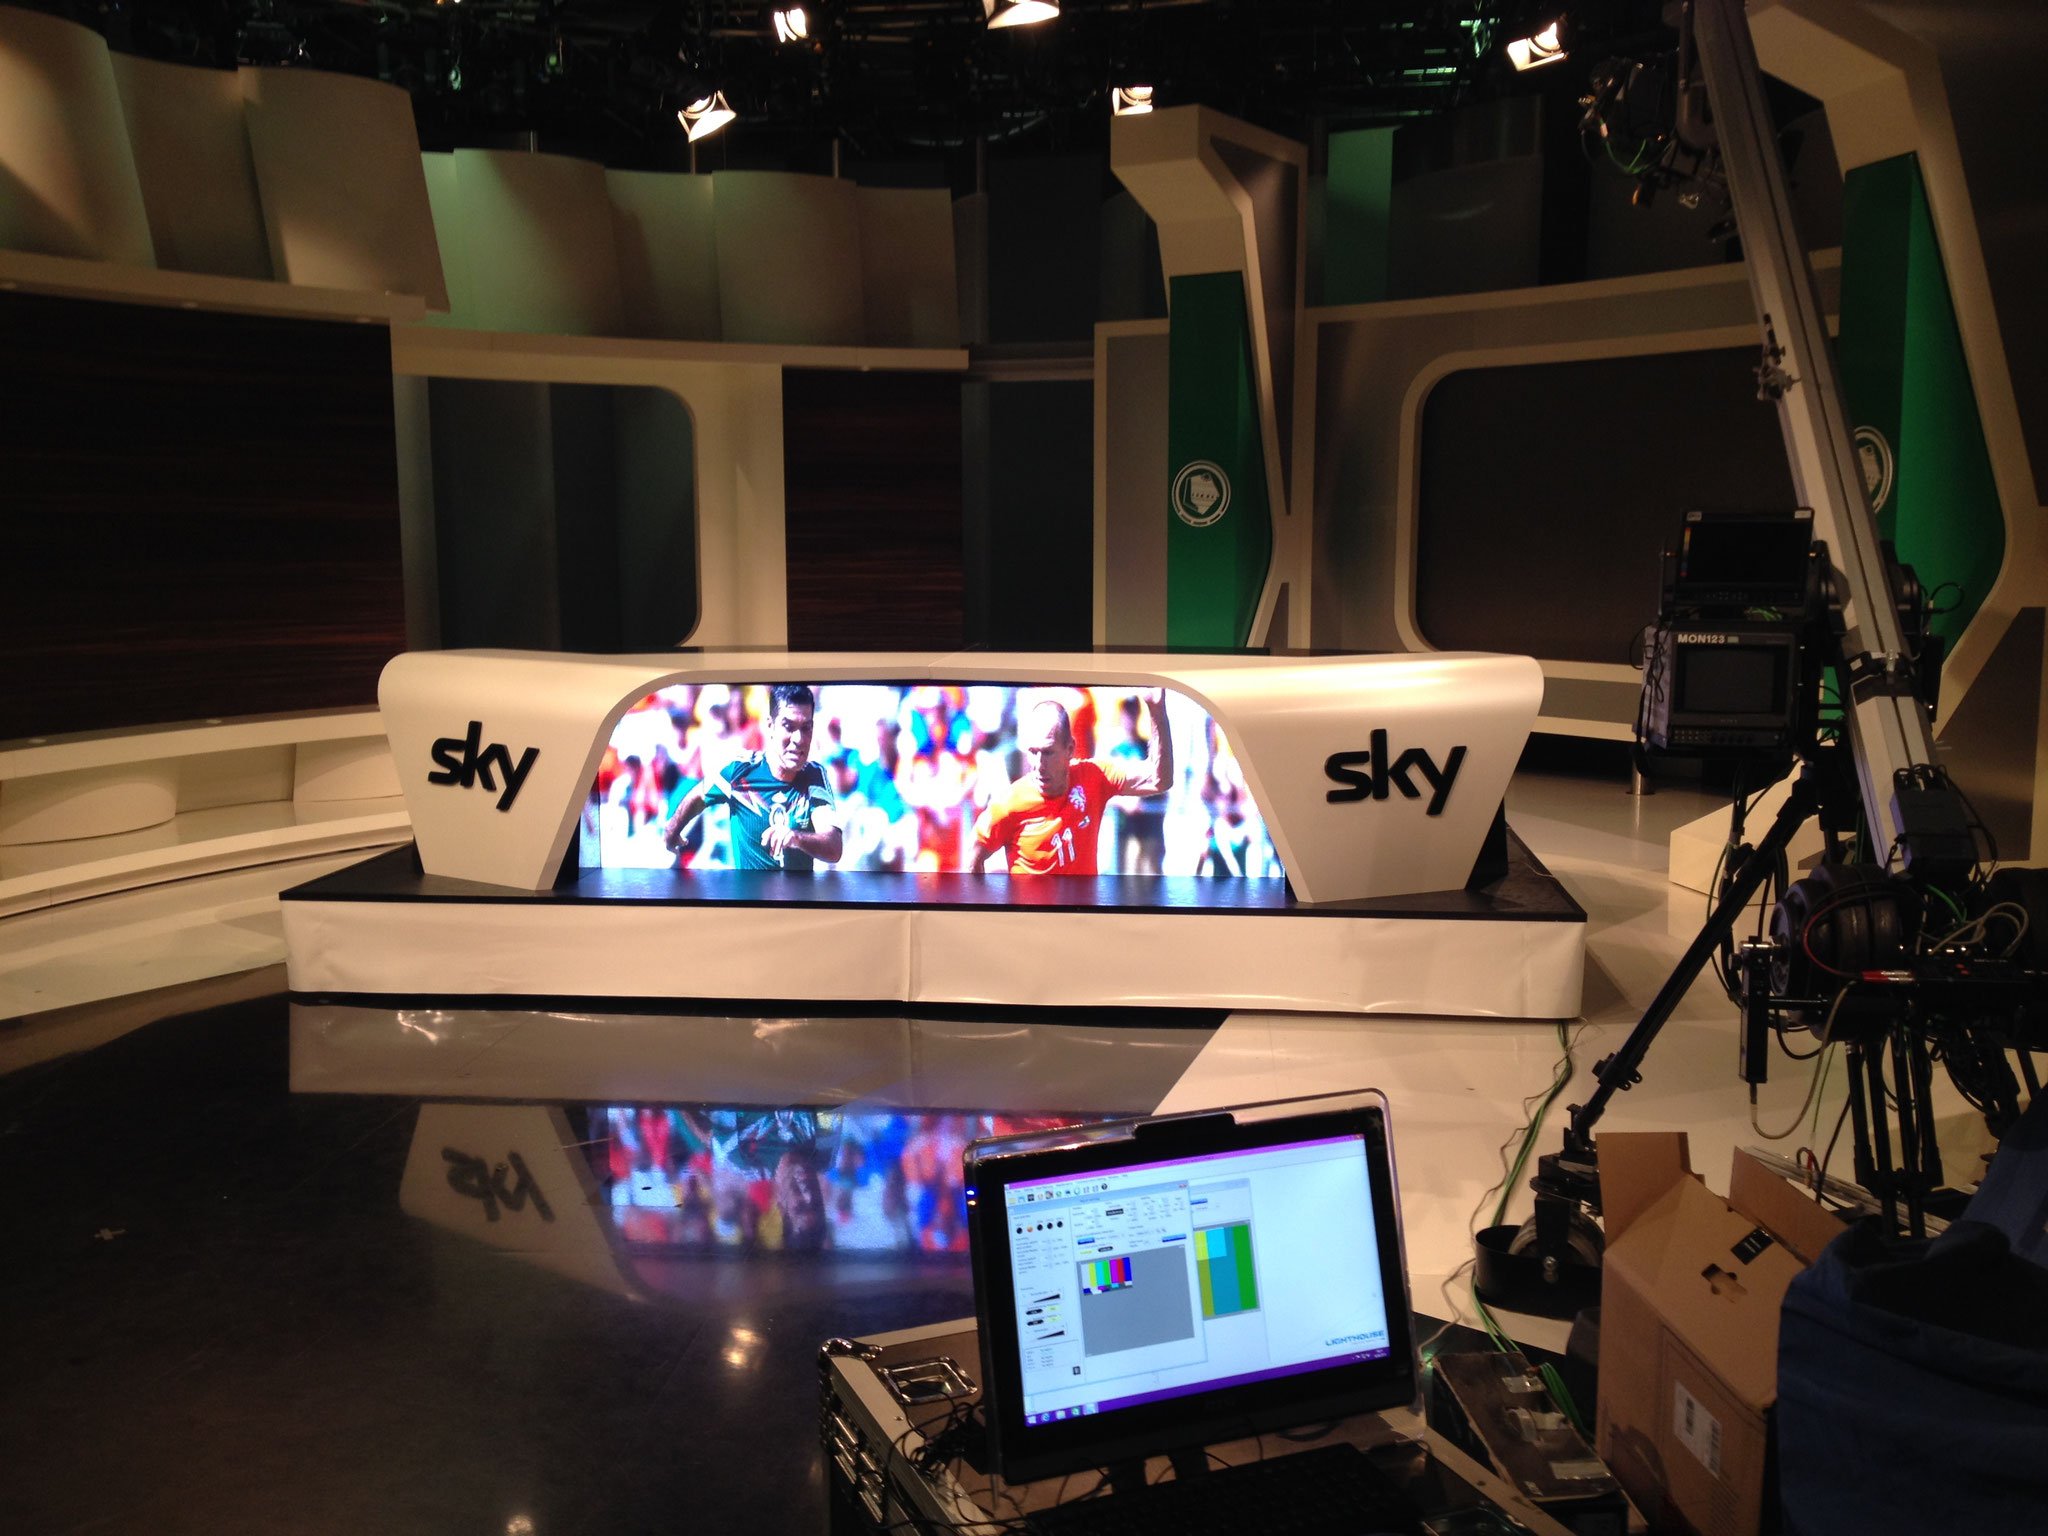 Sky Studio LED Screen Topspiel Tisch